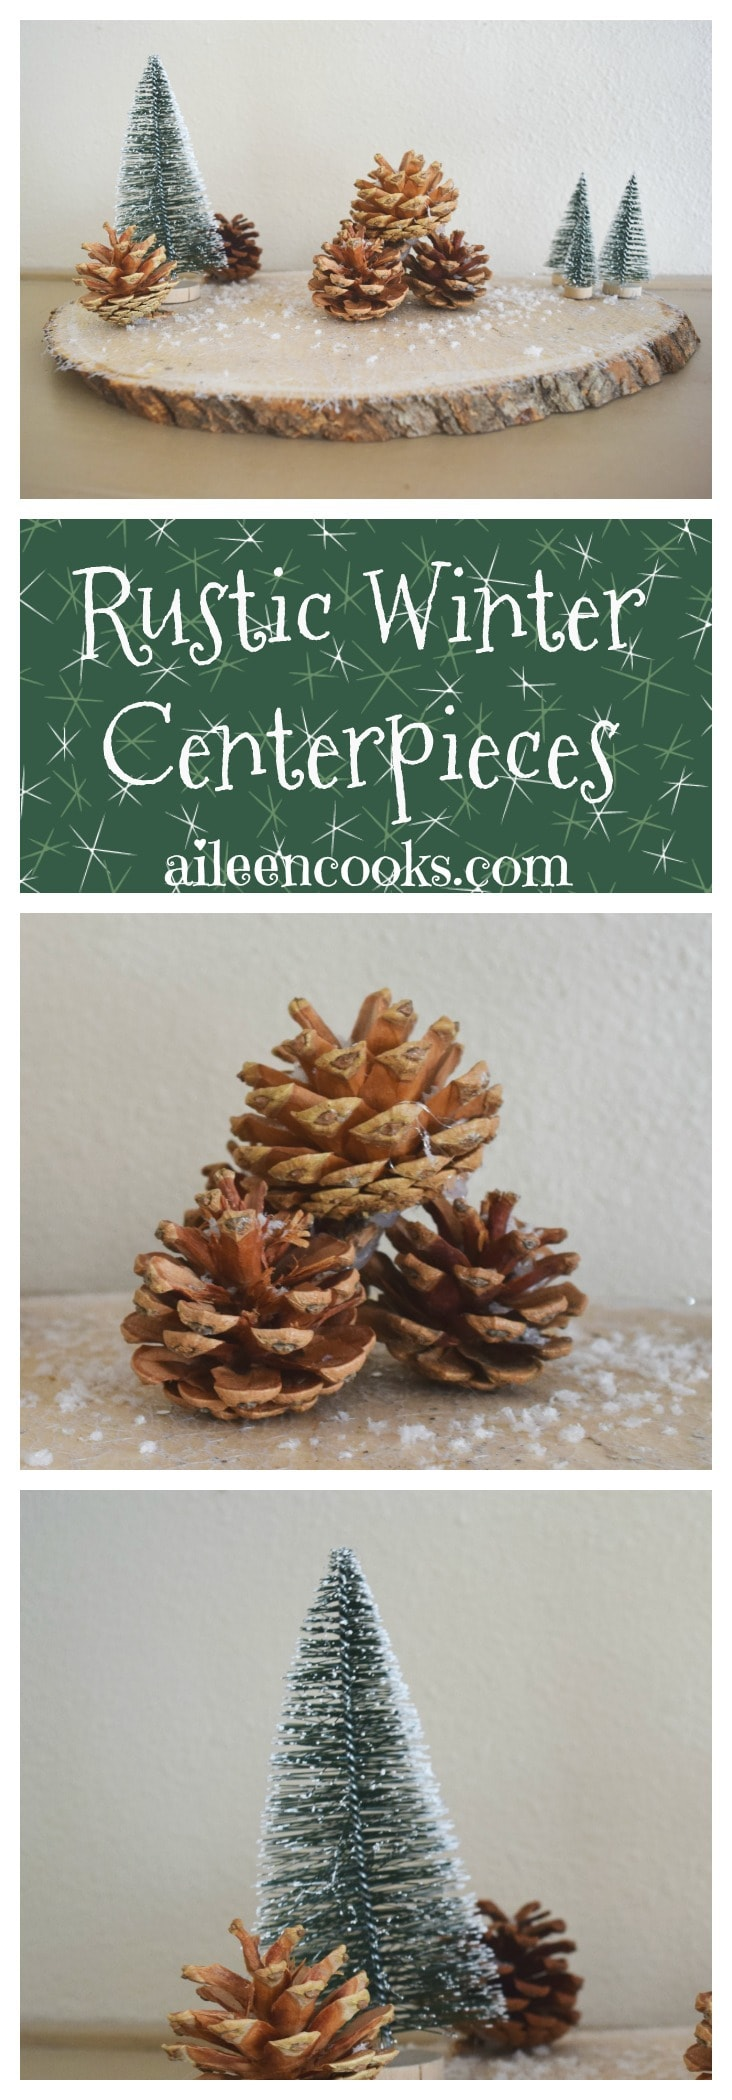 Create this festive and rustic winter centerpiece with wood rounds, sisal trees, pine cones, and craft snow!